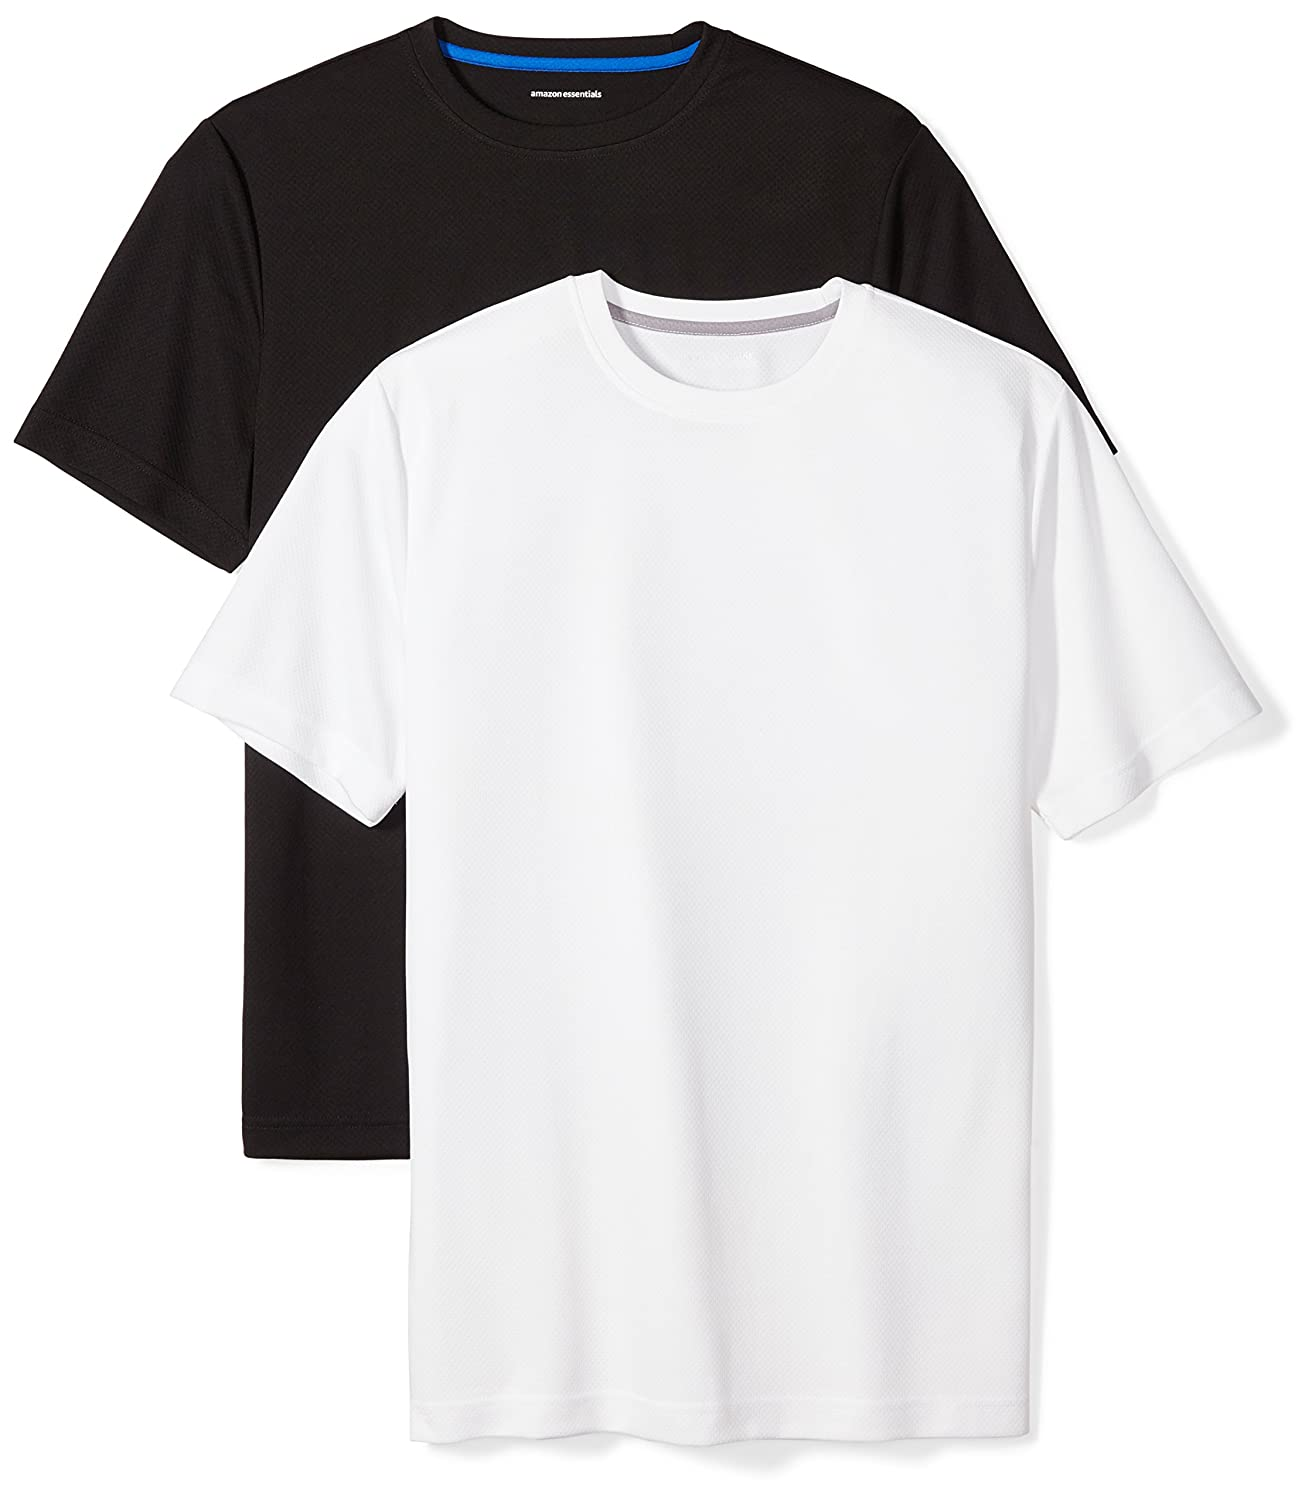 Amazon Essentials Men's 2-Pack Performance Mesh Short-Sleeve T-Shirts 13138